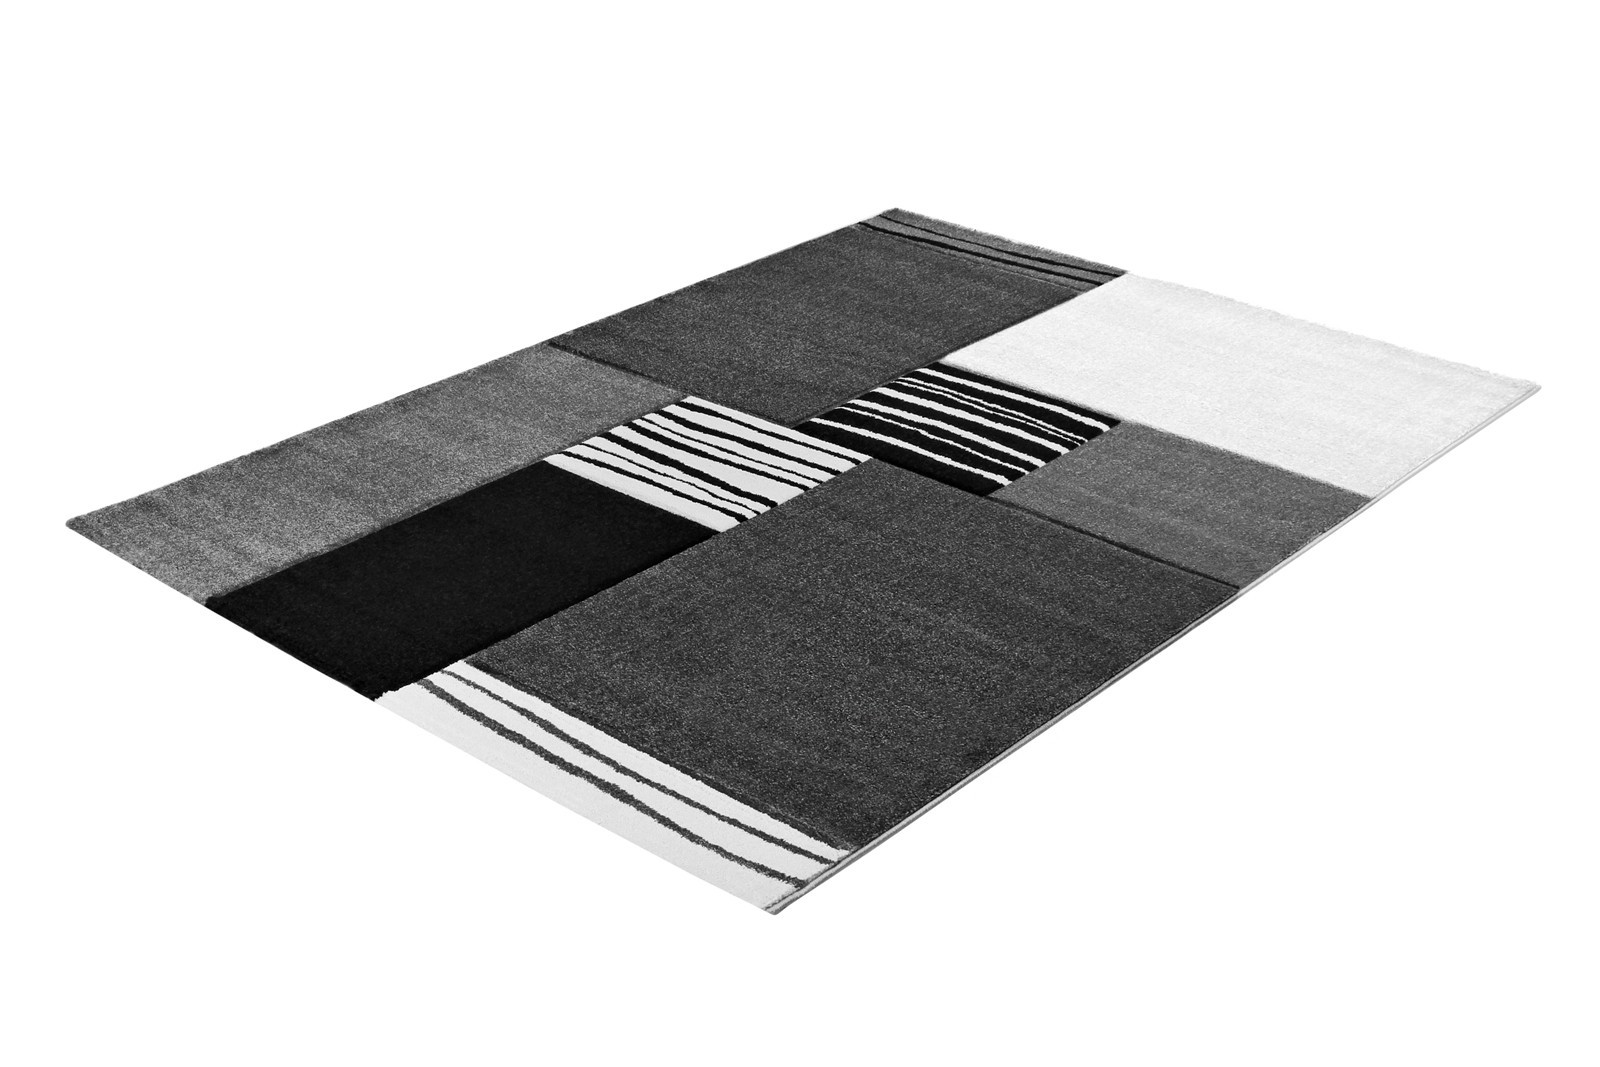 Beautiful tapis tiss plat gris photos - Tapis tisse a plat ...